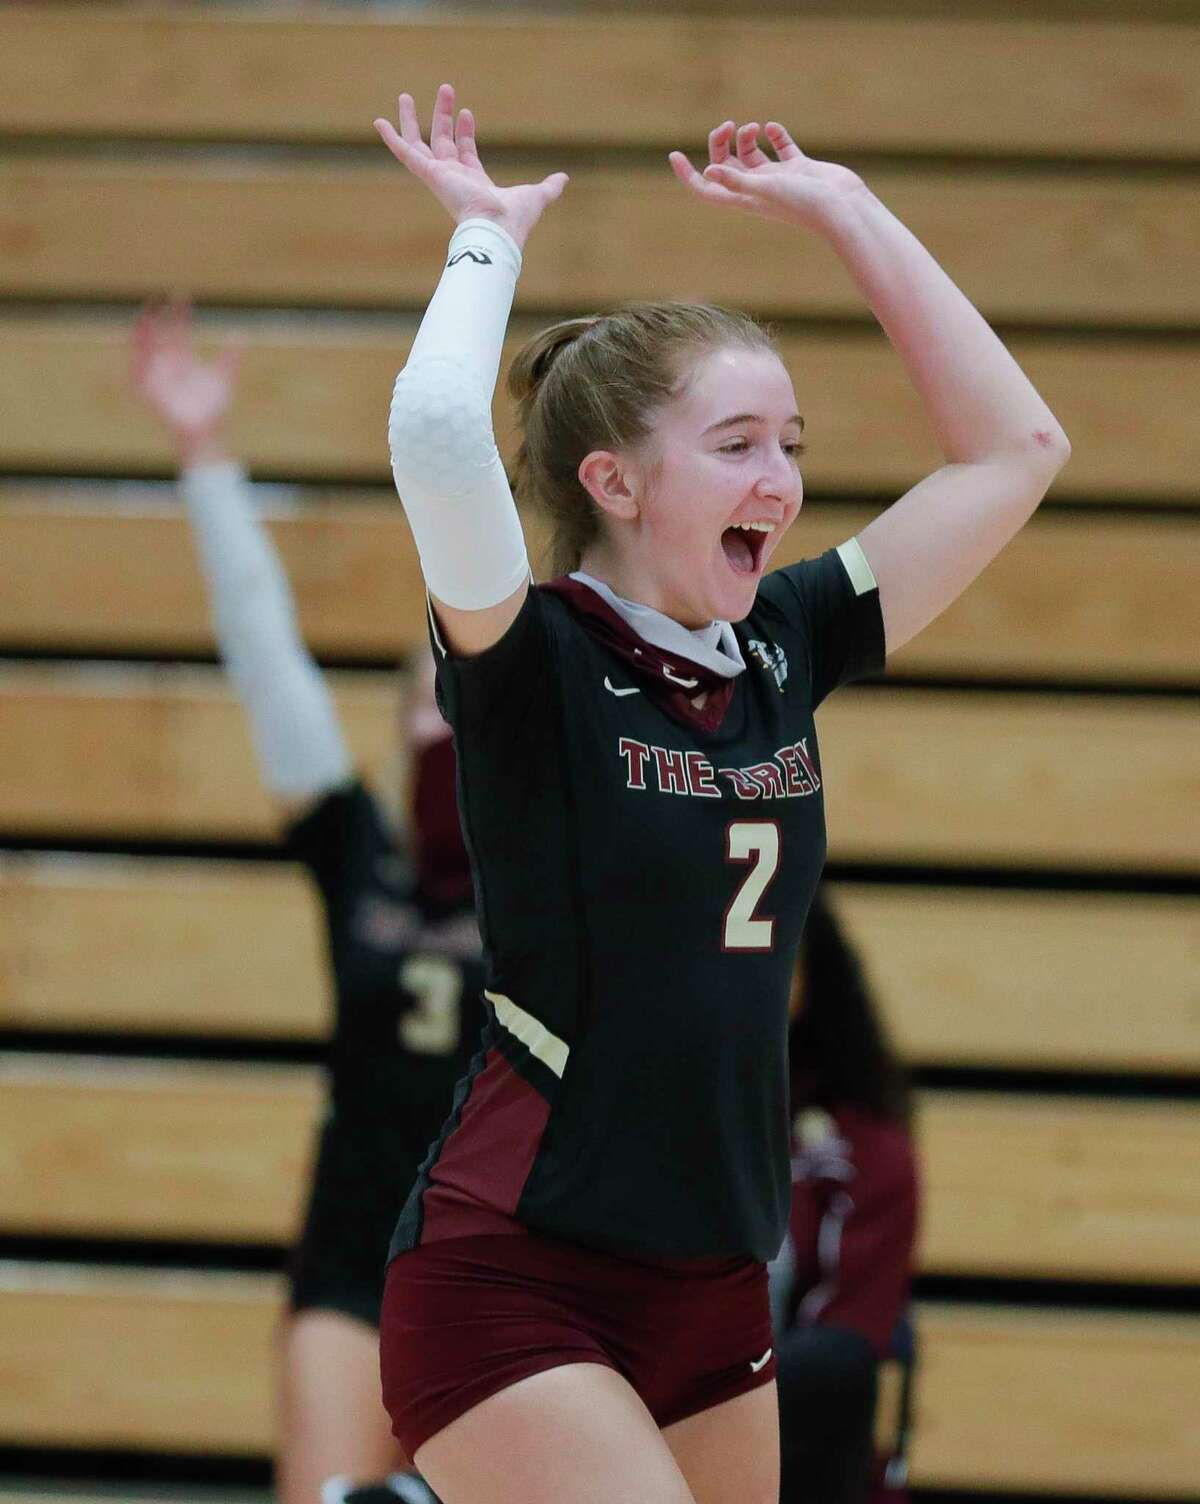 Summer Creek libero BreAnna McDonald (2) reacts after a block during a non-district high school volleyball match at Grand Oaks High School, Tuesday, Sept. 29, 2020, in Spring.